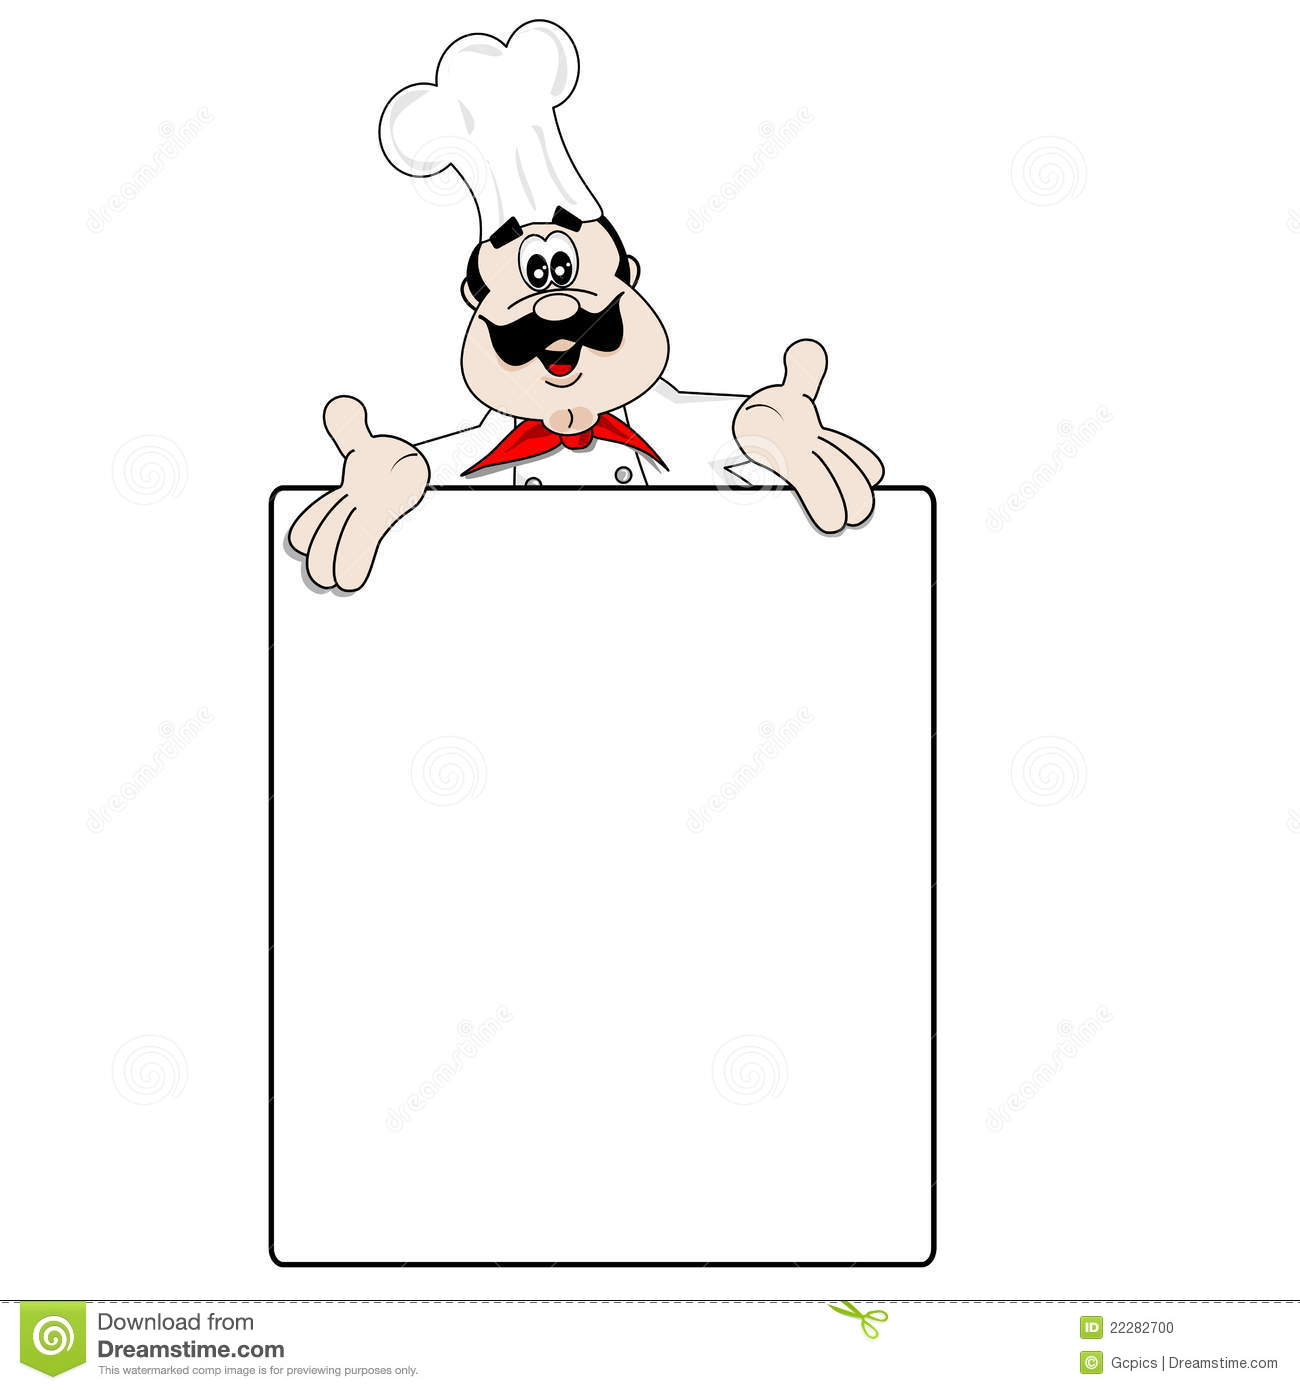 Cartoon Chef And Blank Menu Recipe Stock Photo - Image: 22282700